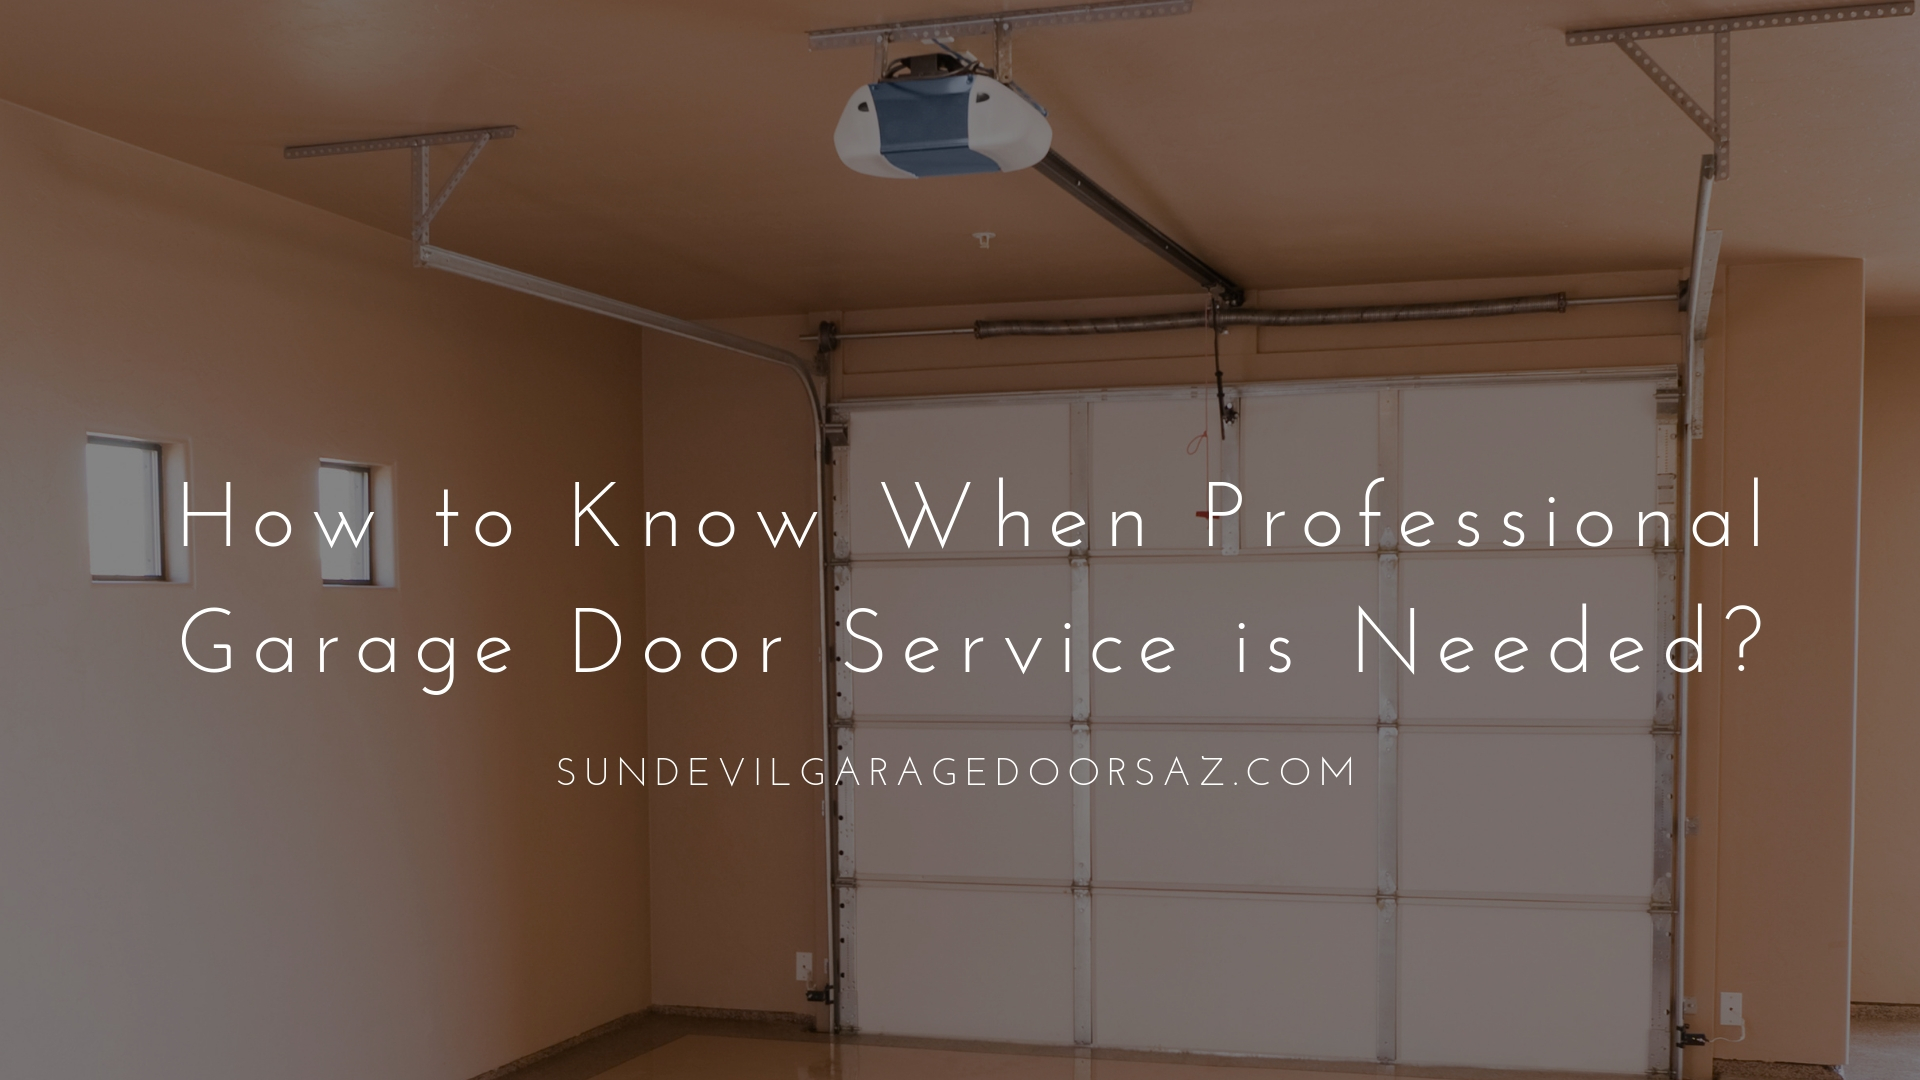 How to Know When Professional Garage Door Service is